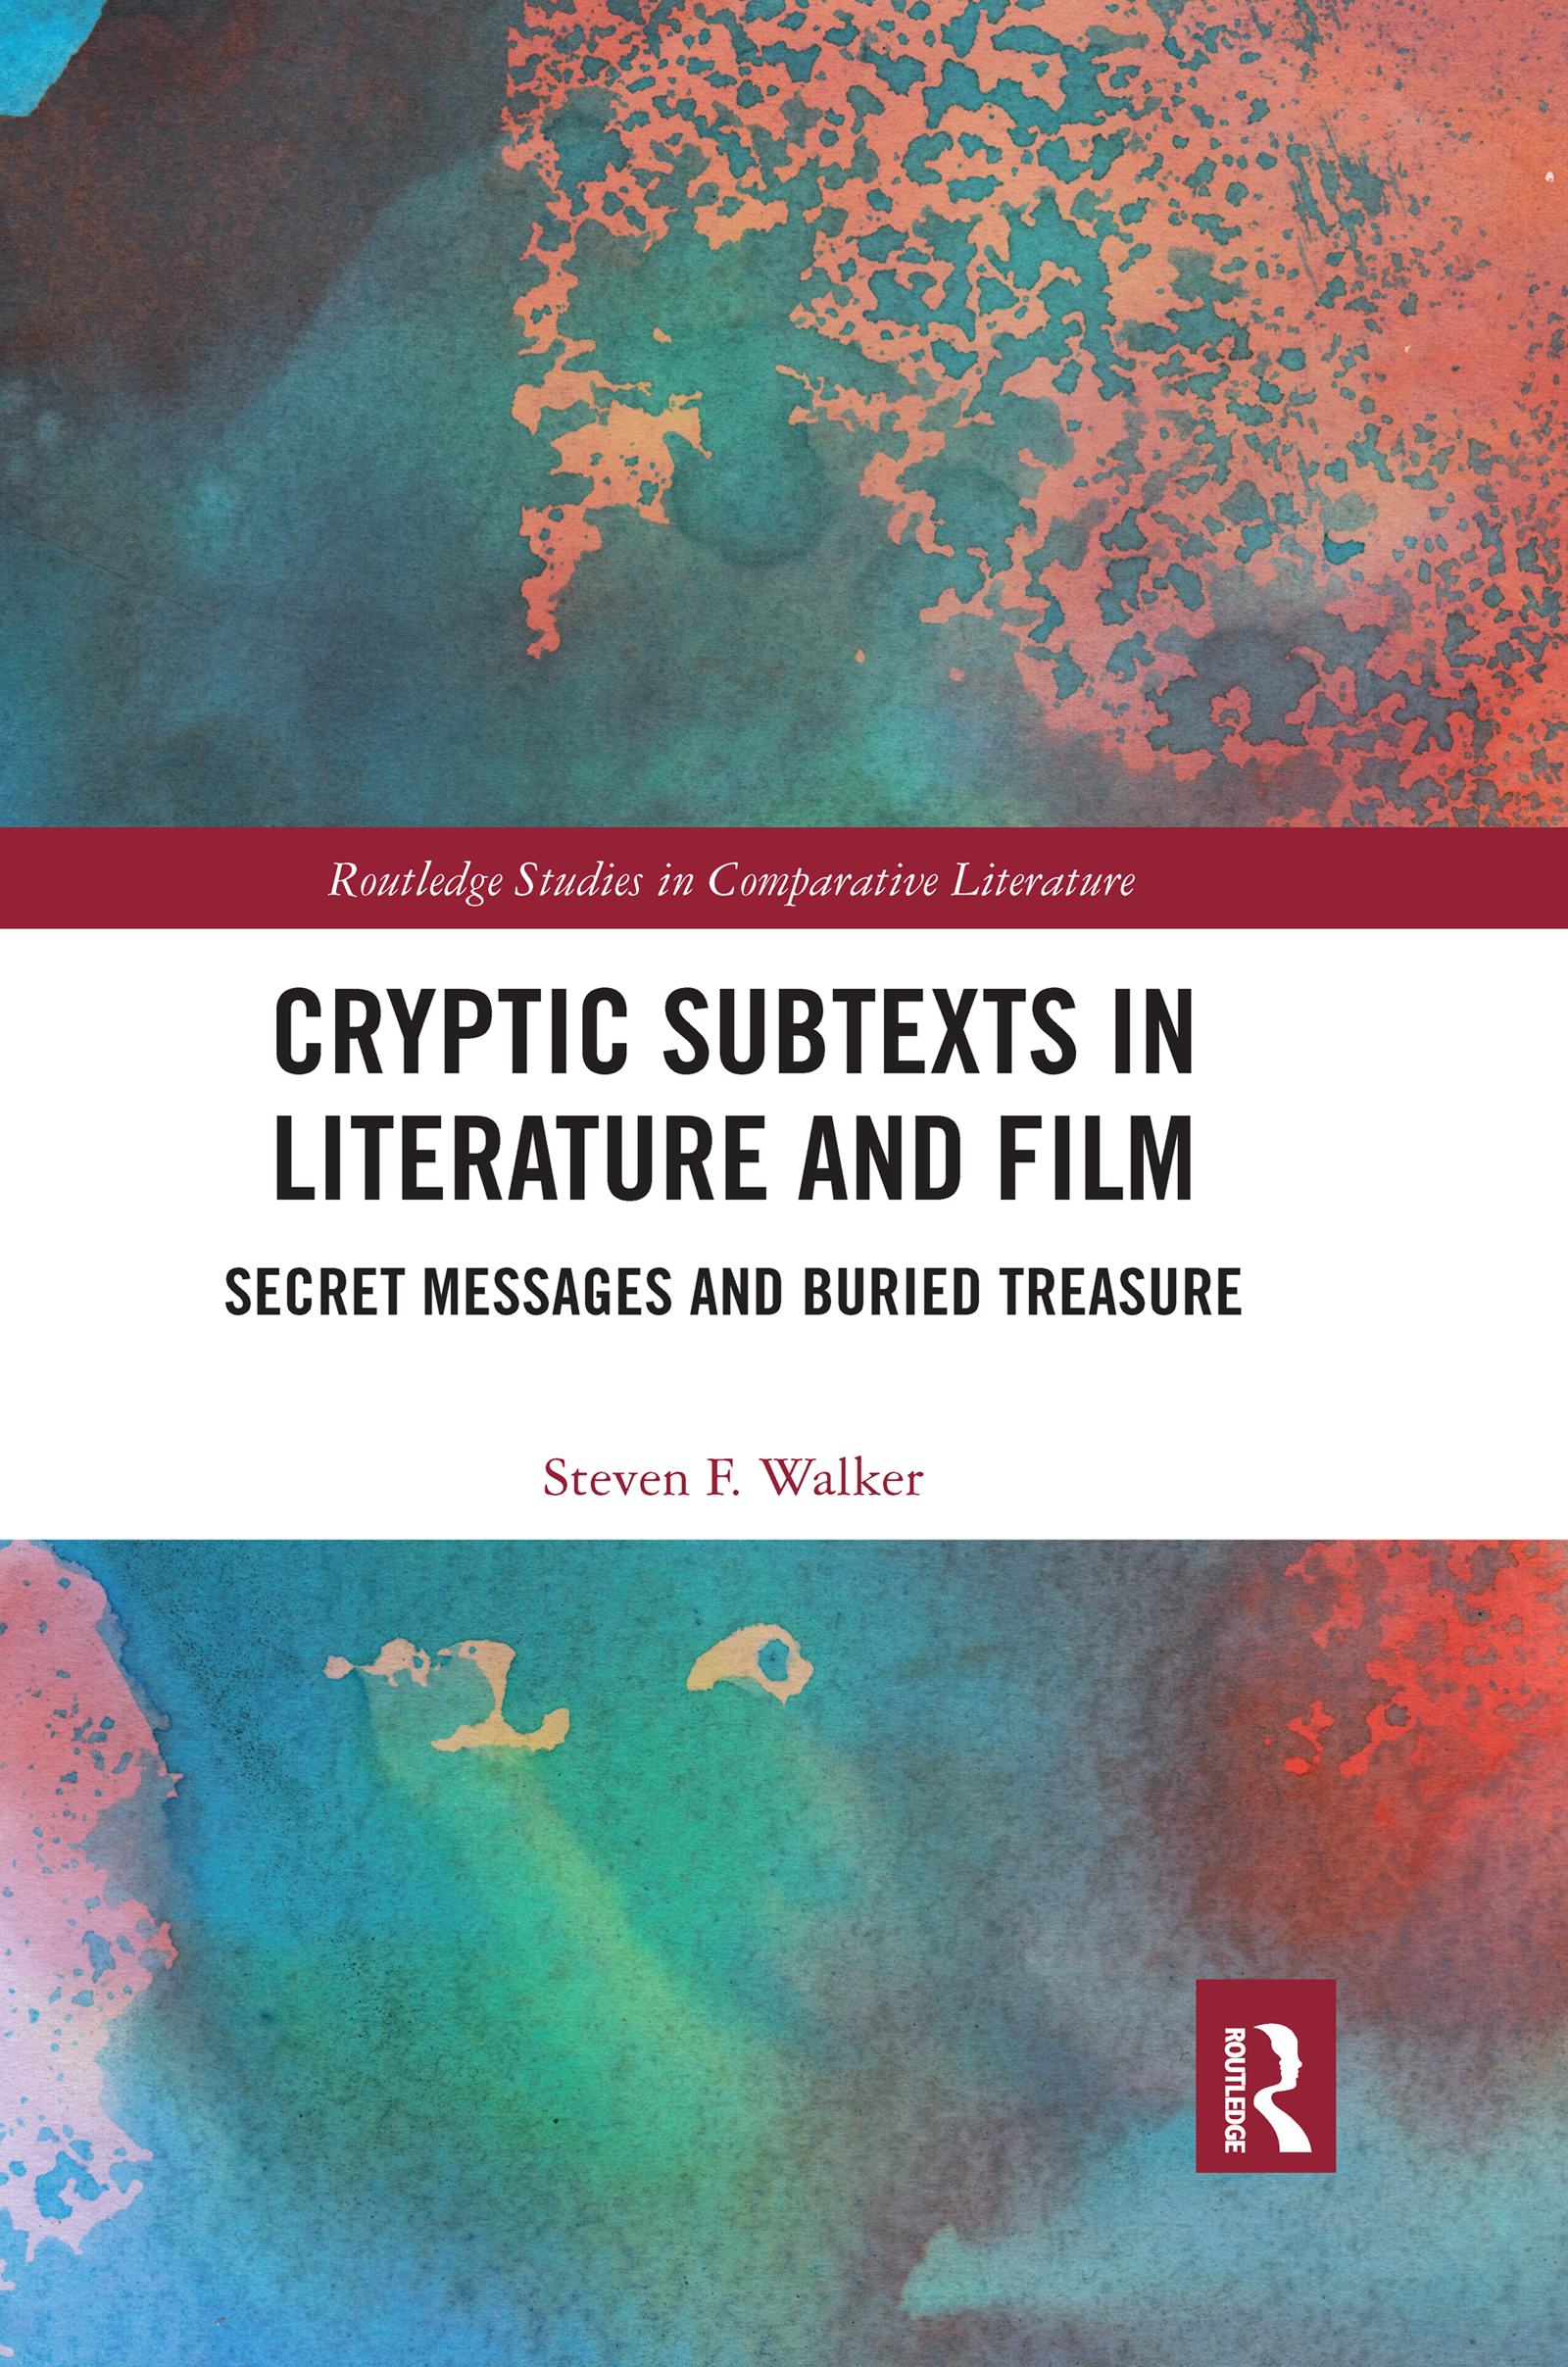 Cryptic Subtexts in Literature and Film